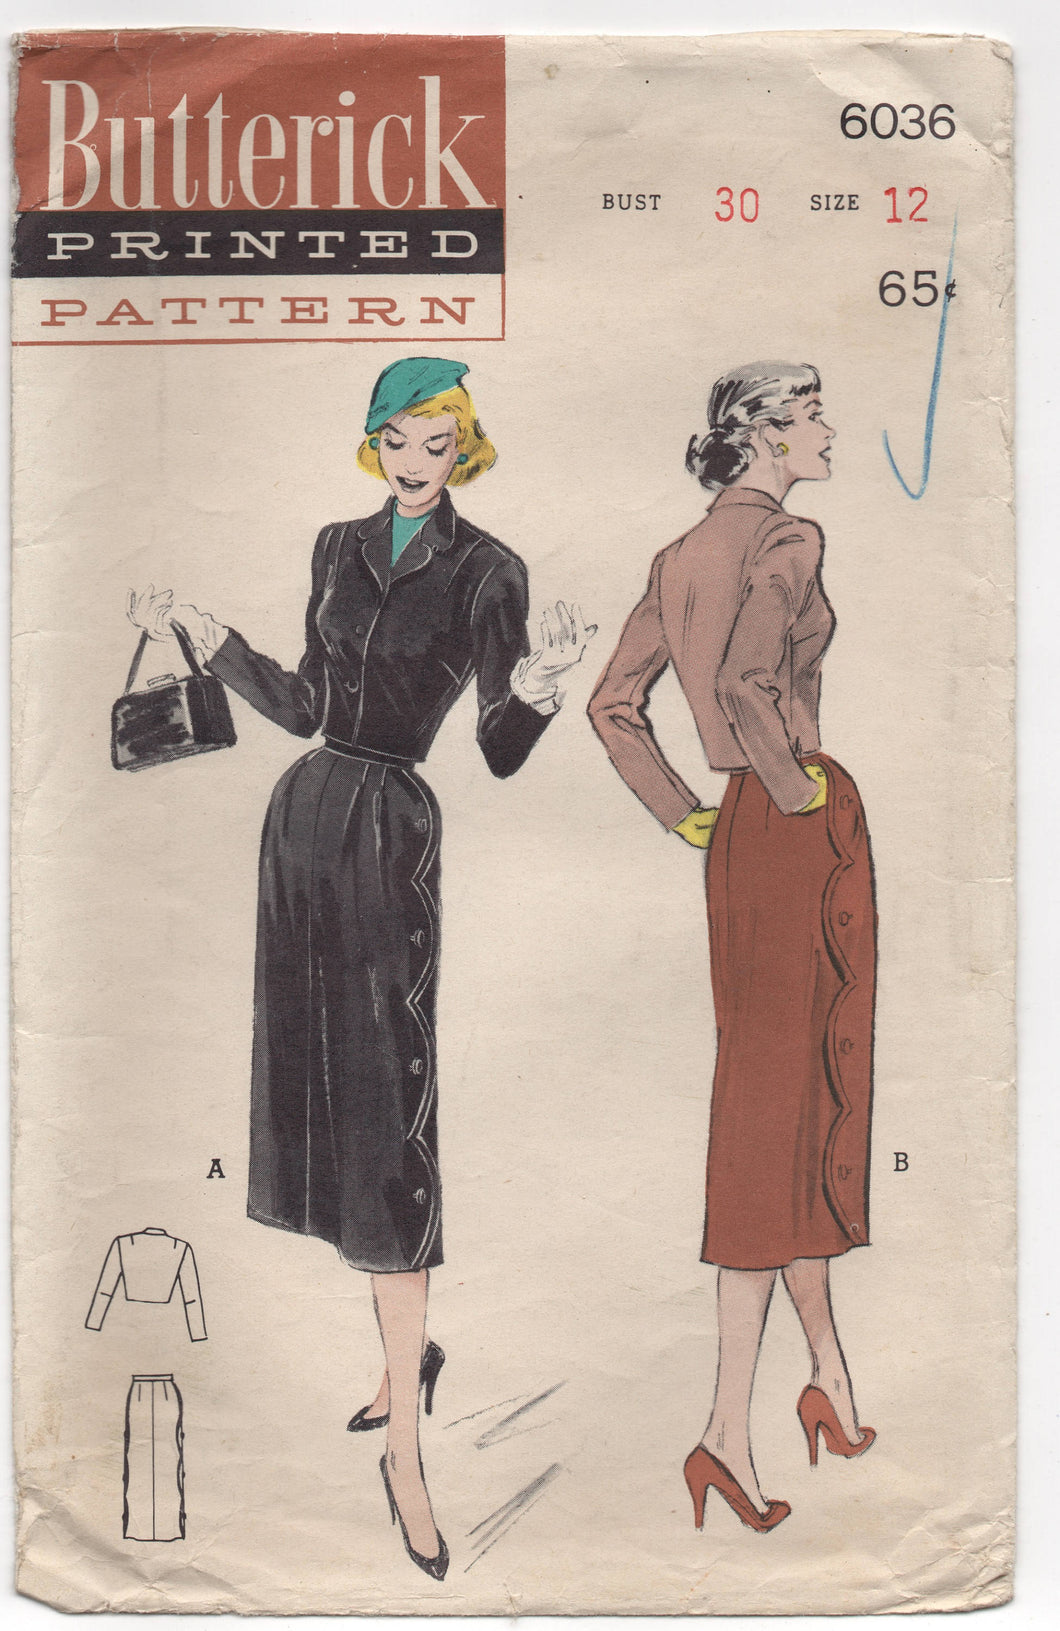 1950's Butterick Jacketed Suit with Scalloped Skirt Pattern - Bust 30